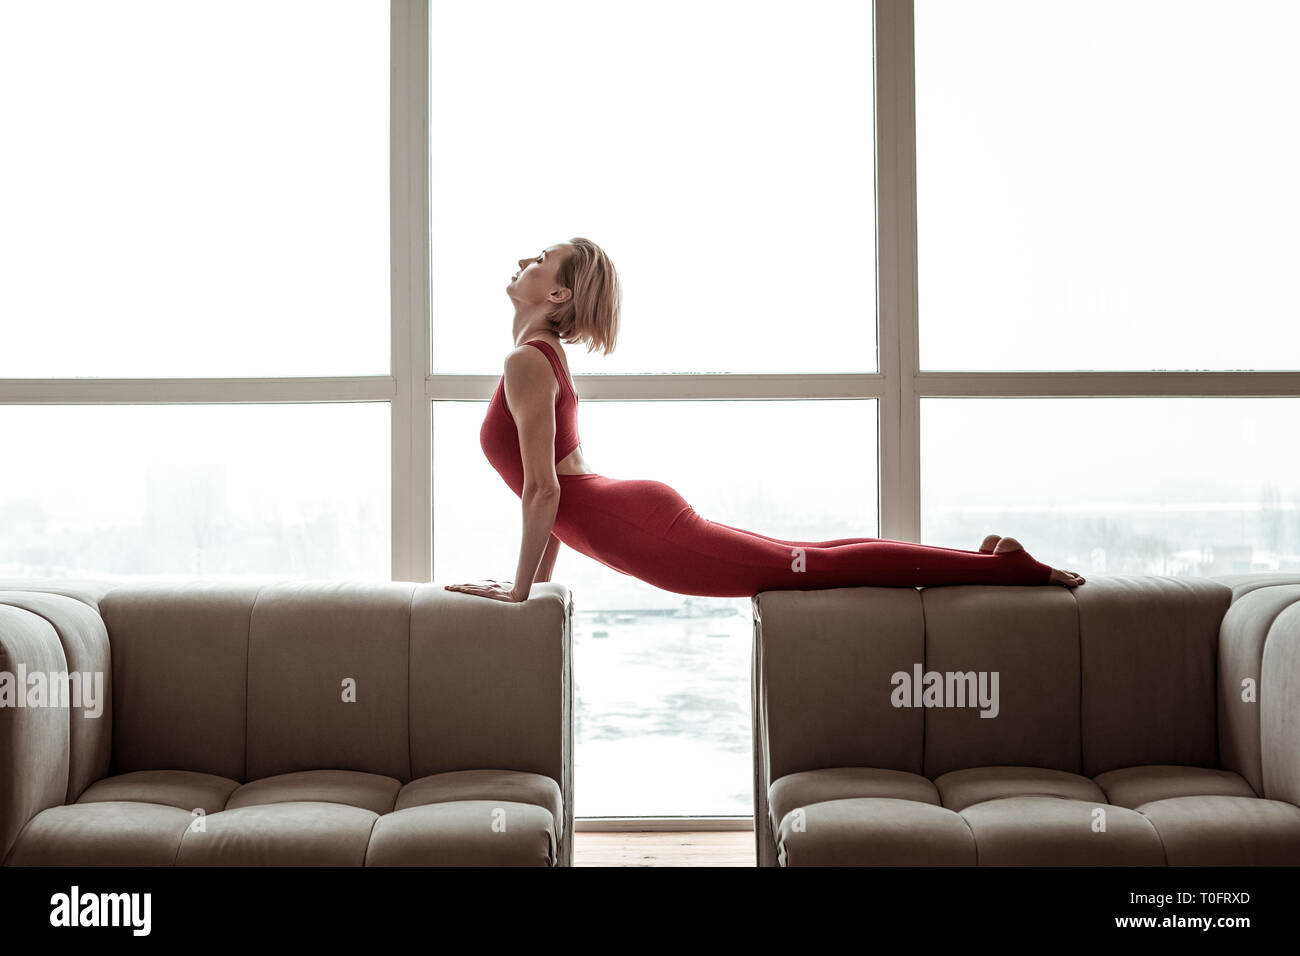 Appealing strong woman in bright red outfit performing yoga - Stock Image